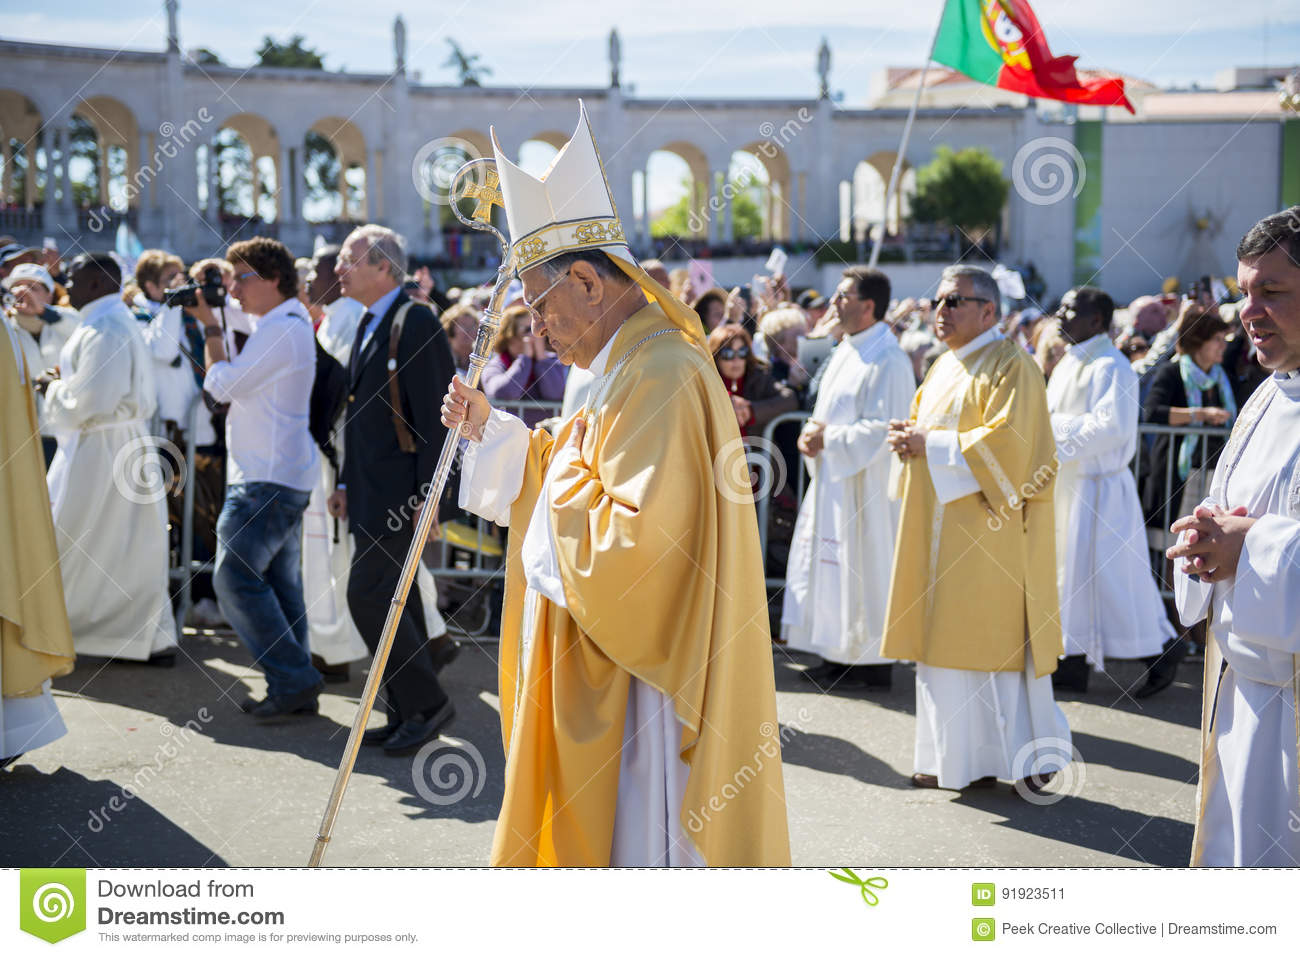 Group of Priests at the Sanctuary of Fatima during the celebrations of the apparition of the Virgin Mary in Fatima, Portugal.